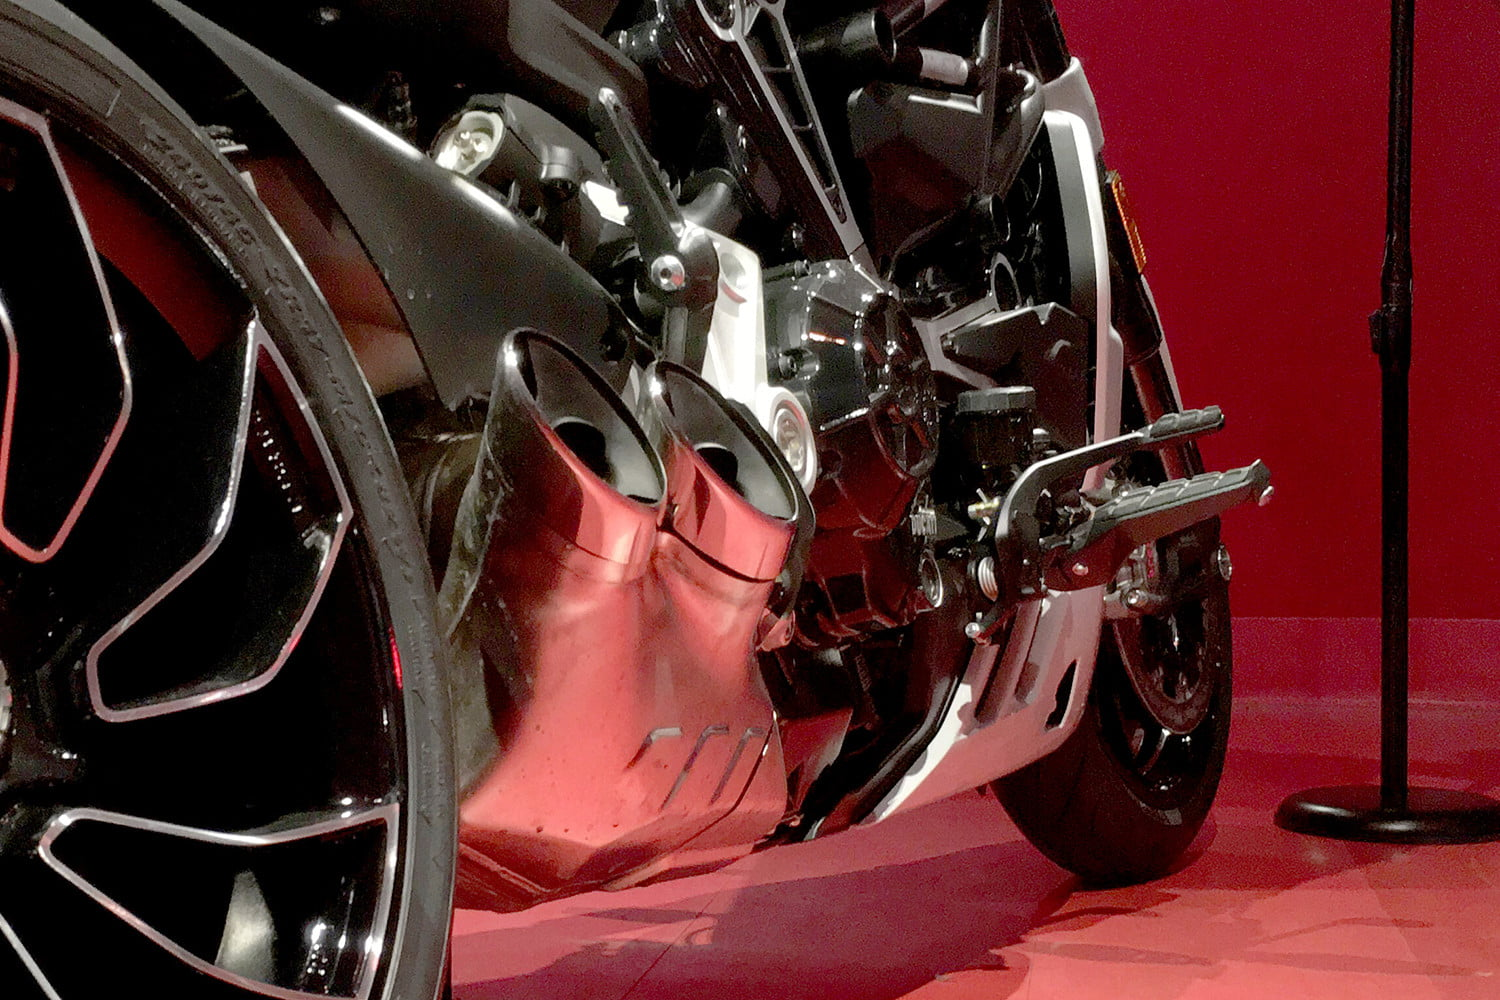 ducati 2018 motorcycle preview xdiavel s pipes